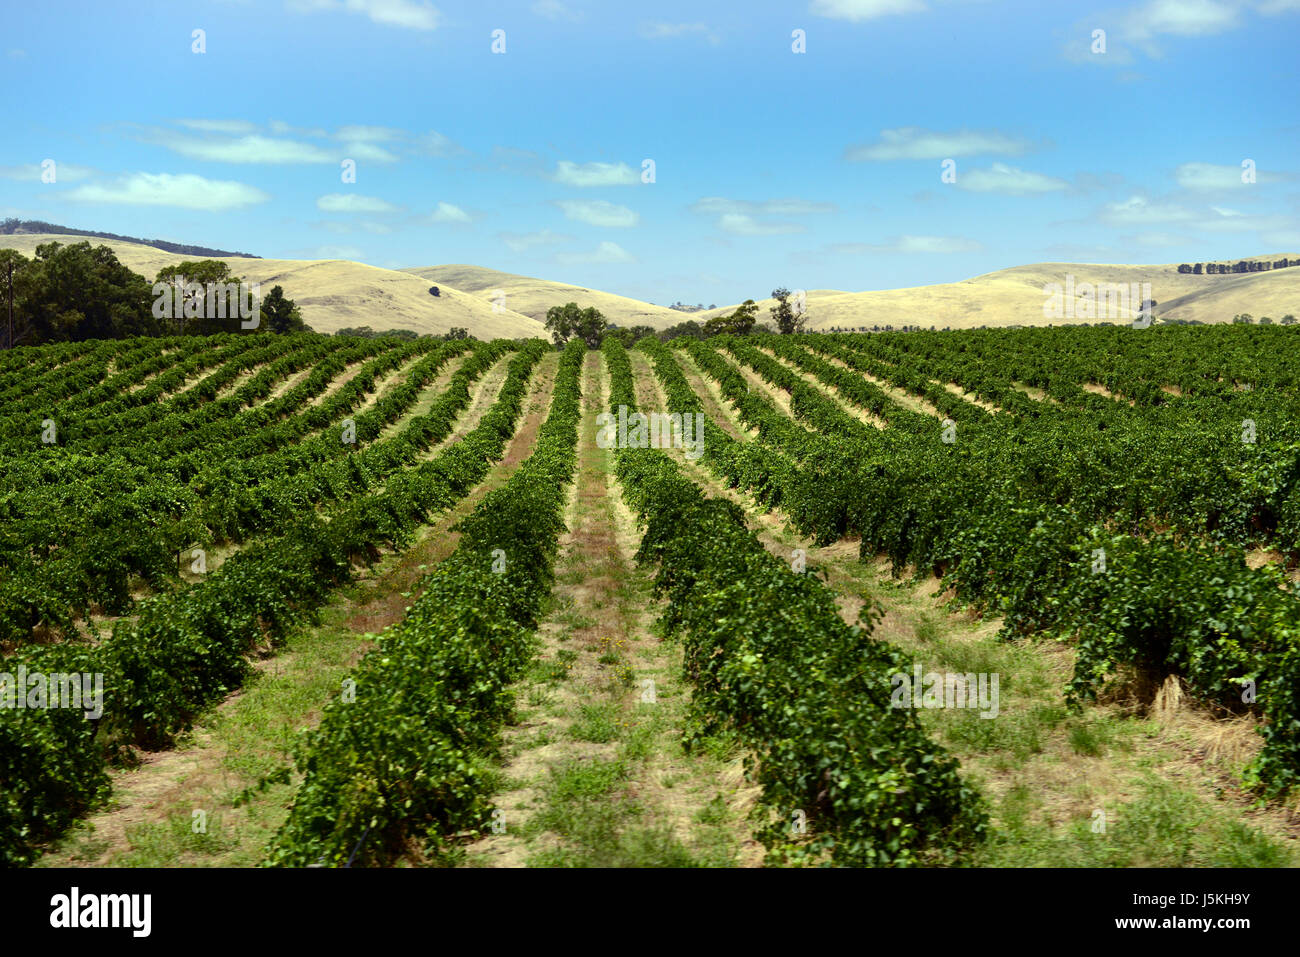 White wine grapes on vines in a vineyard in the Barossa valley in South Australia. - Stock Image